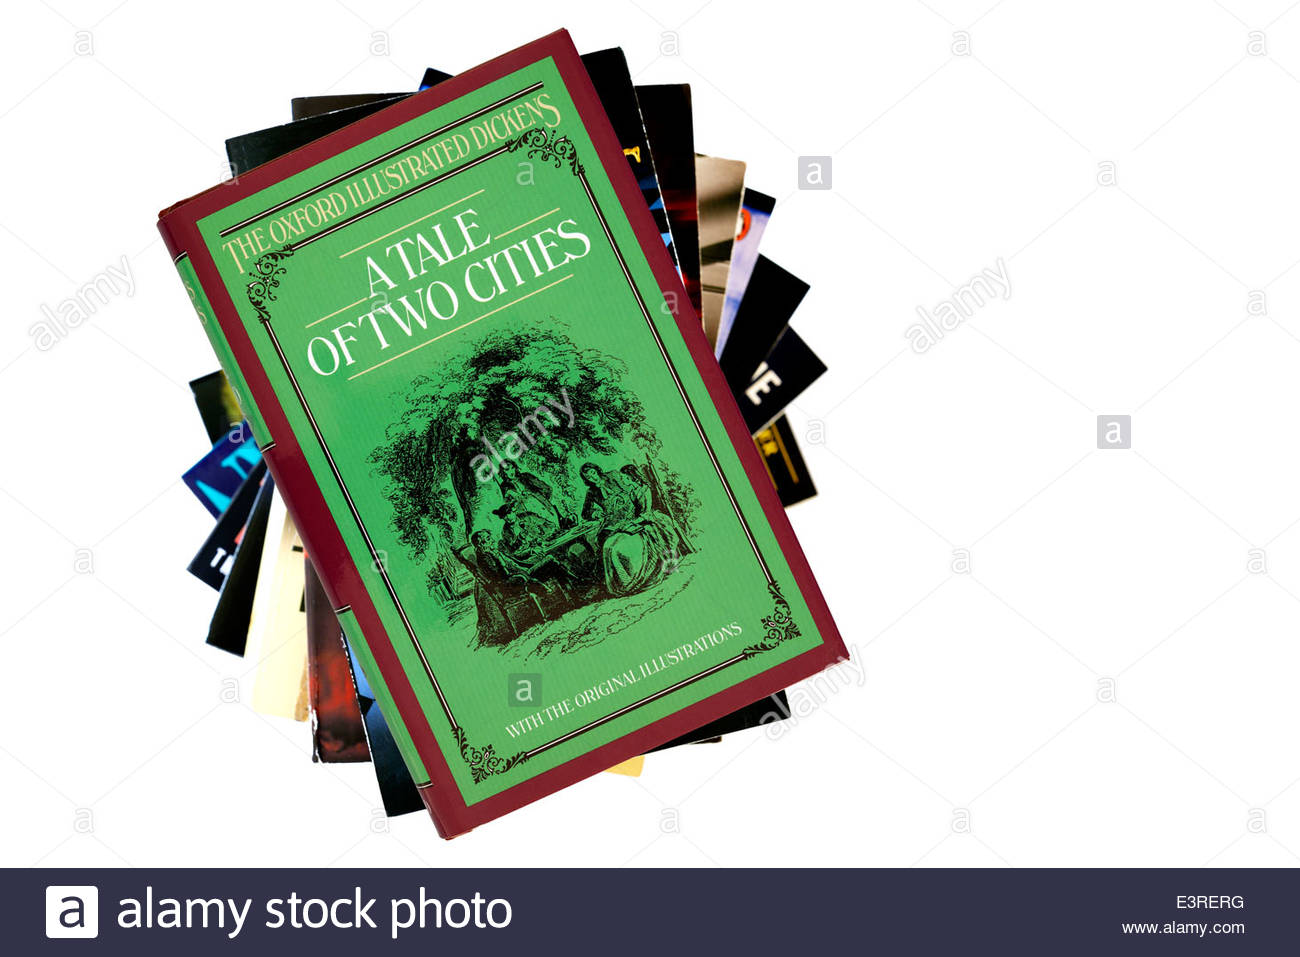 Charles Dickens novels, A Tale of Two Cities, book title, stacked used books, England - Stock Image